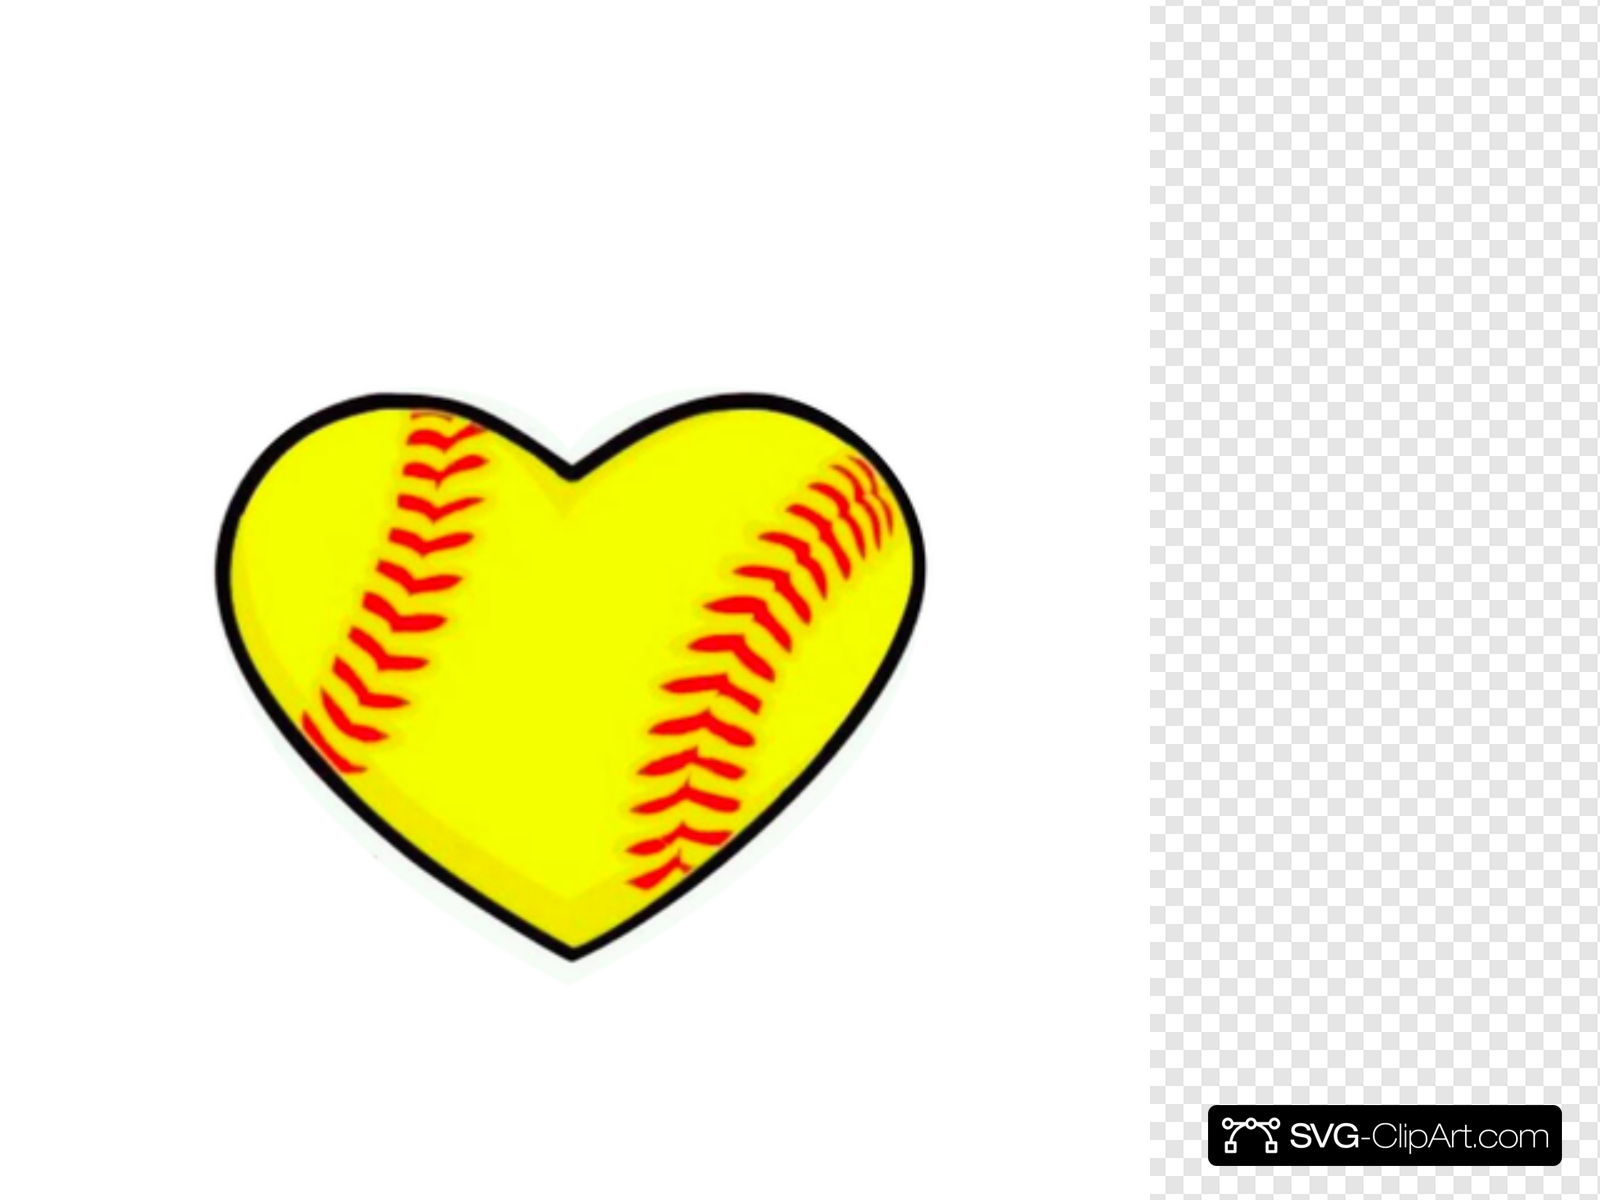 Heart clip art icon. Hearts clipart softball